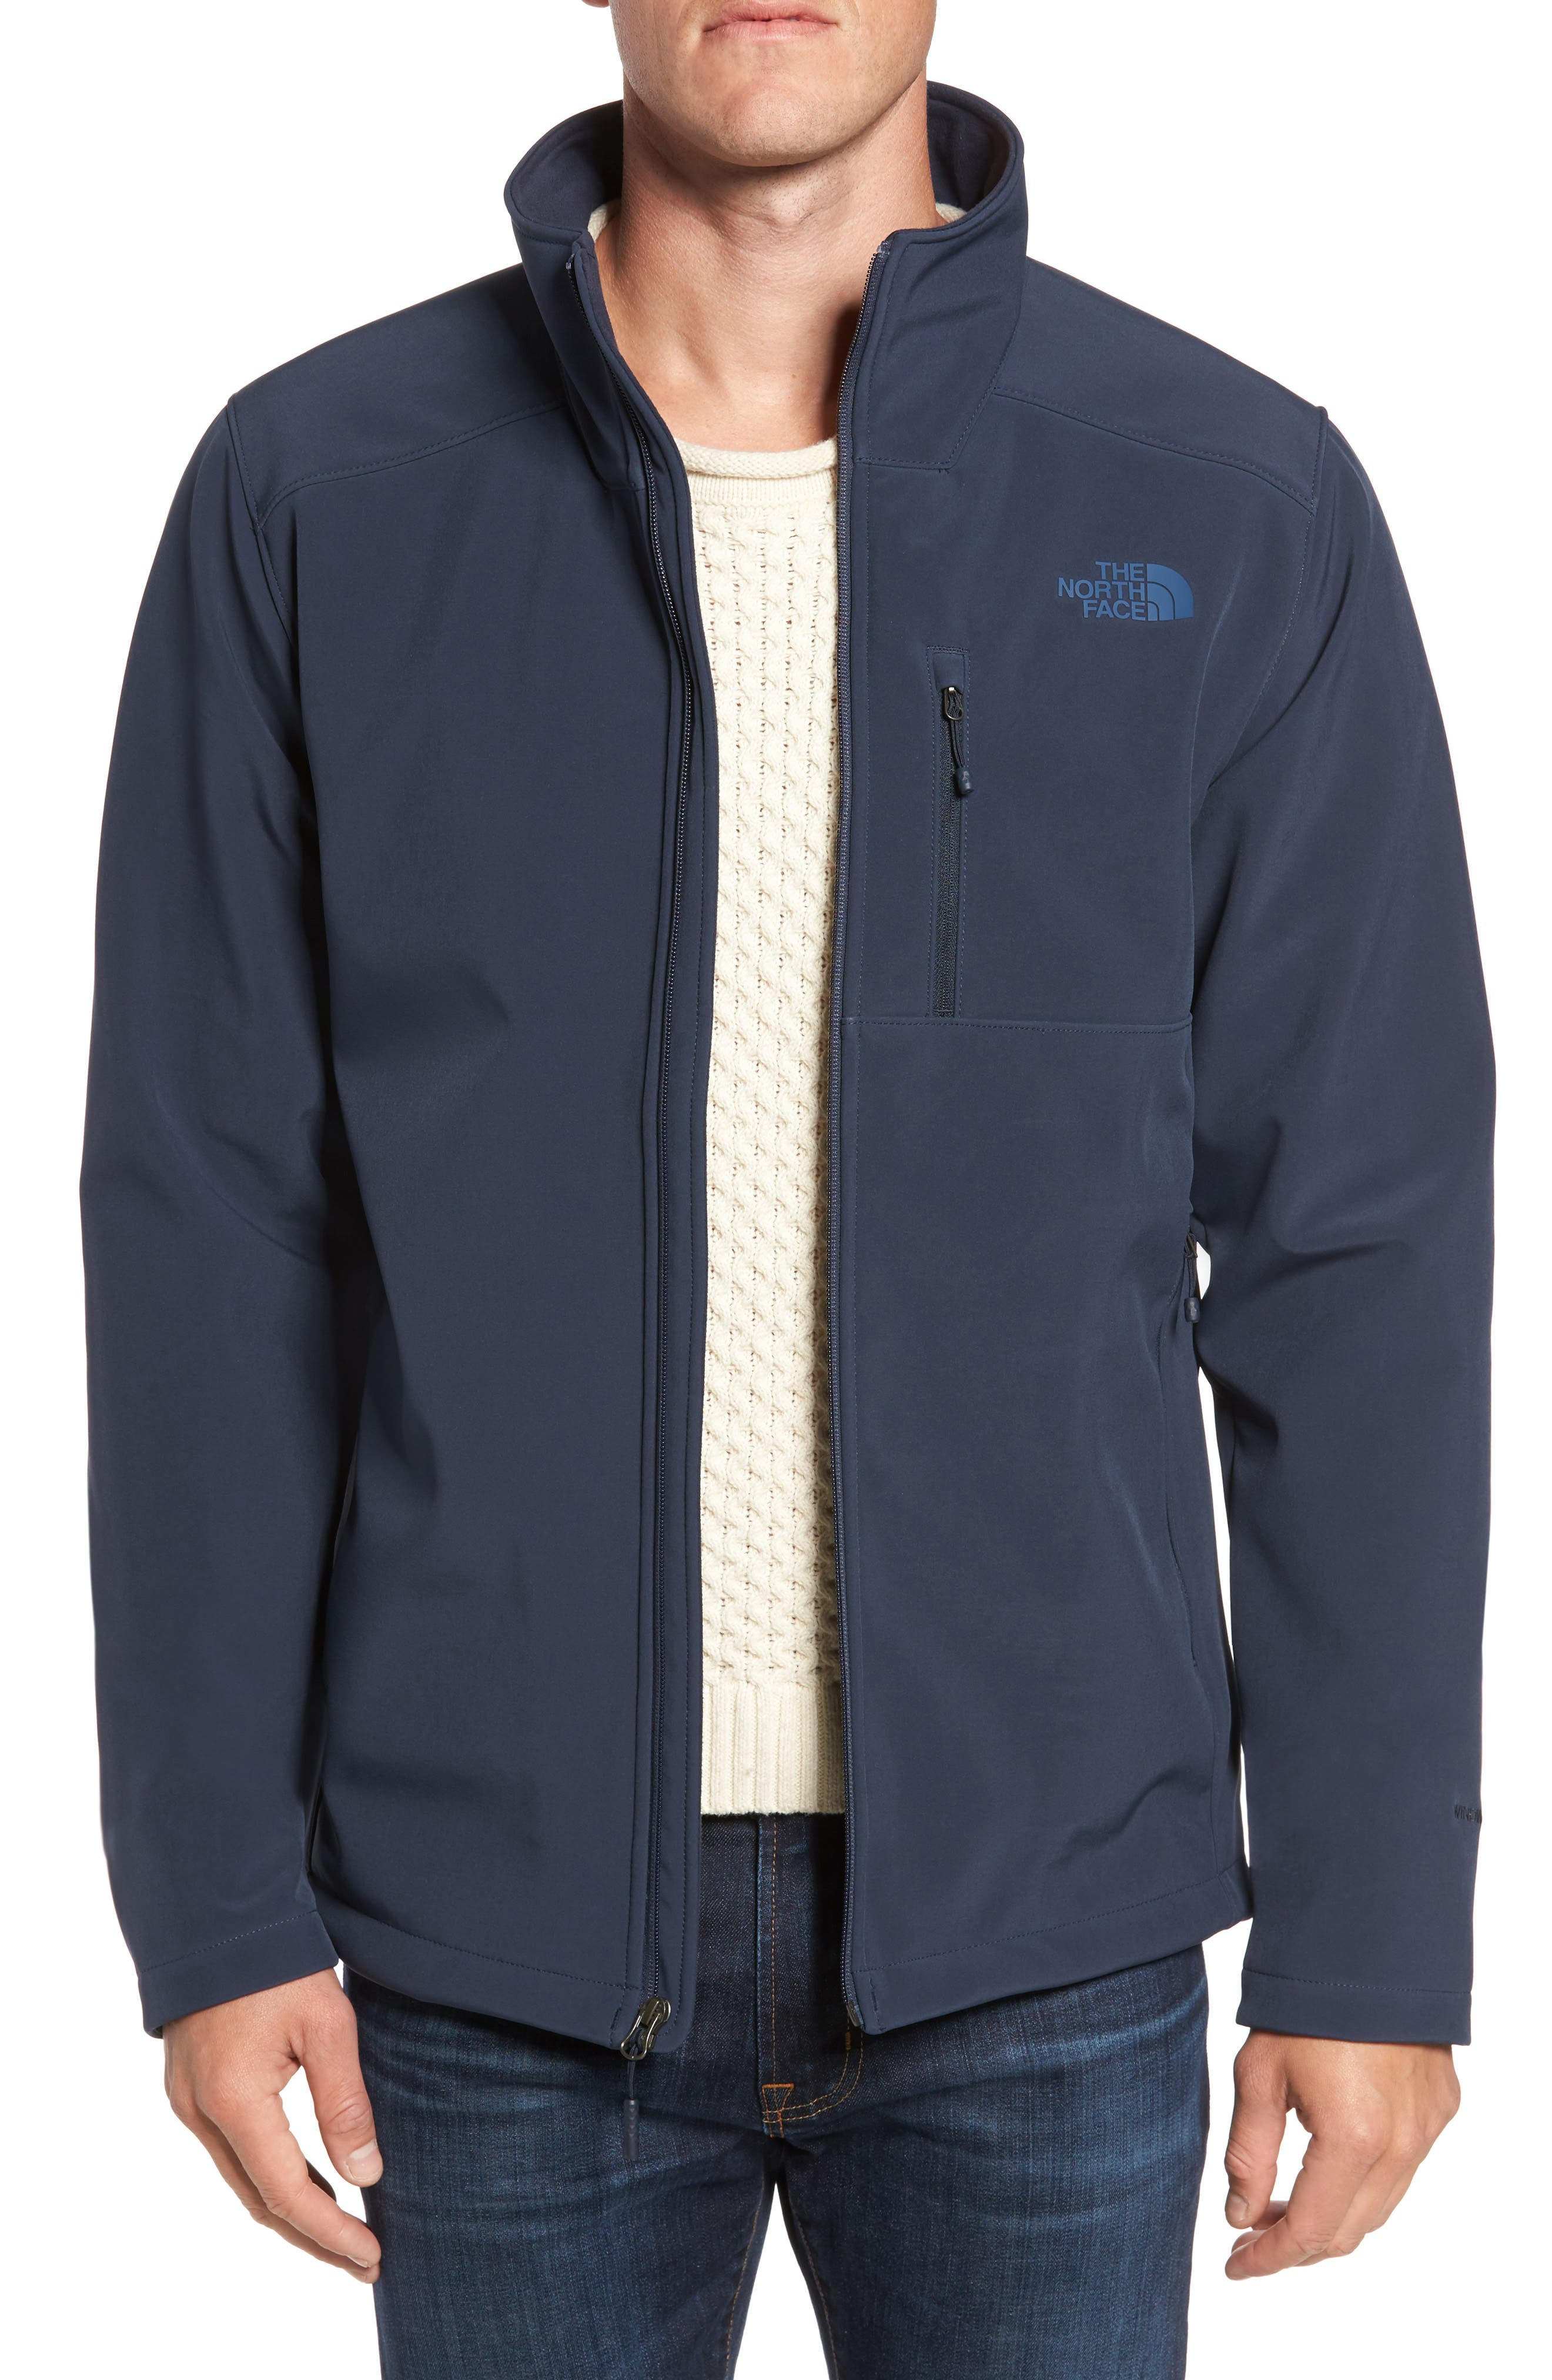 Alternate Image 1 Selected - The North Face Apex Bionic 2 Water Repellent Jacket (Tall)